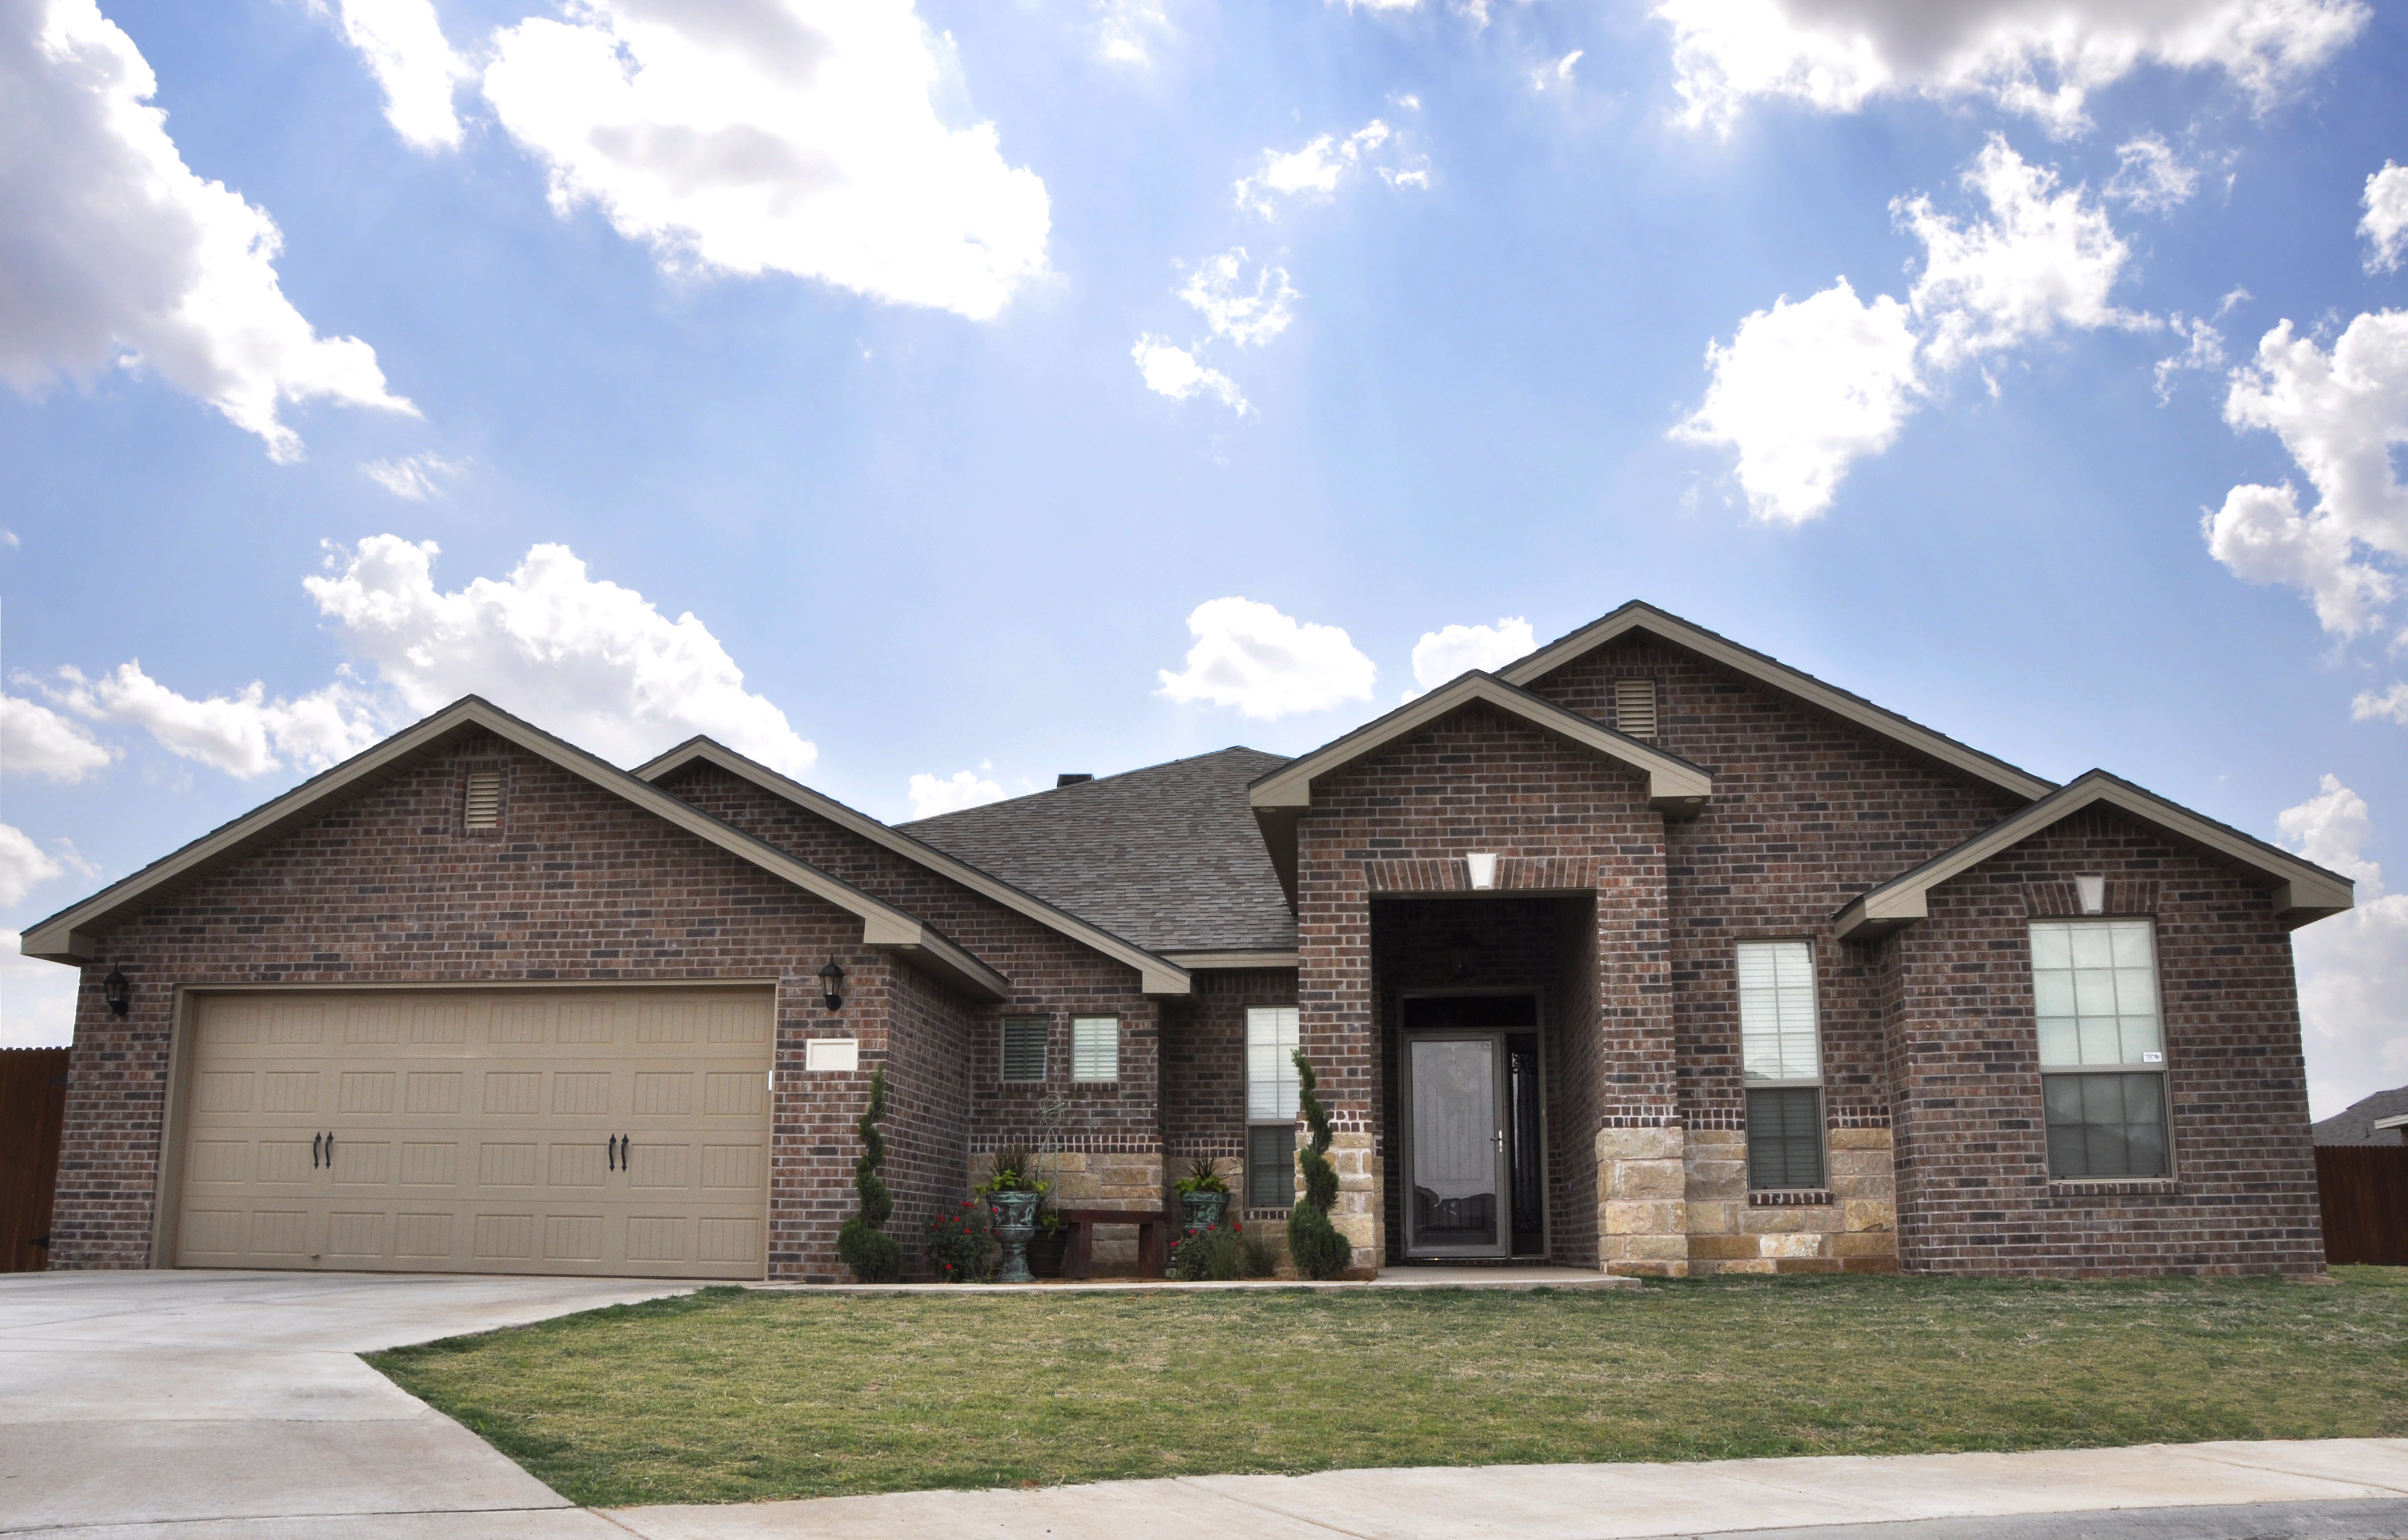 rental homes in odessa texas trend home design and decor odessa texas real estate rentals trend home design and decor